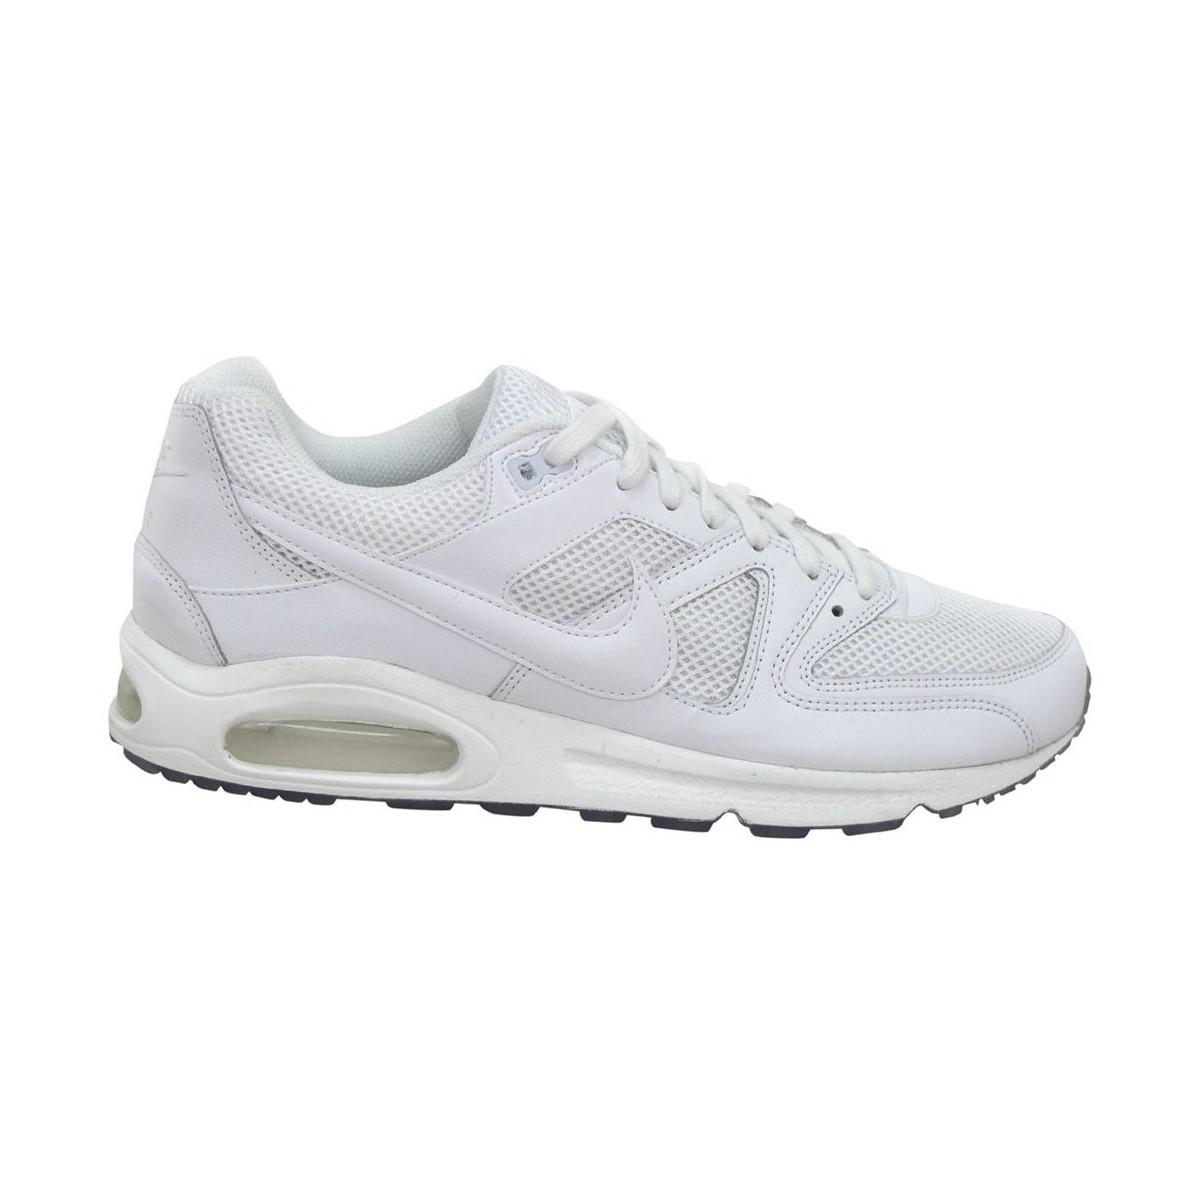 03b80d2c6f35b Nike Air Max Command Men s Running Trainers In White in White for ...